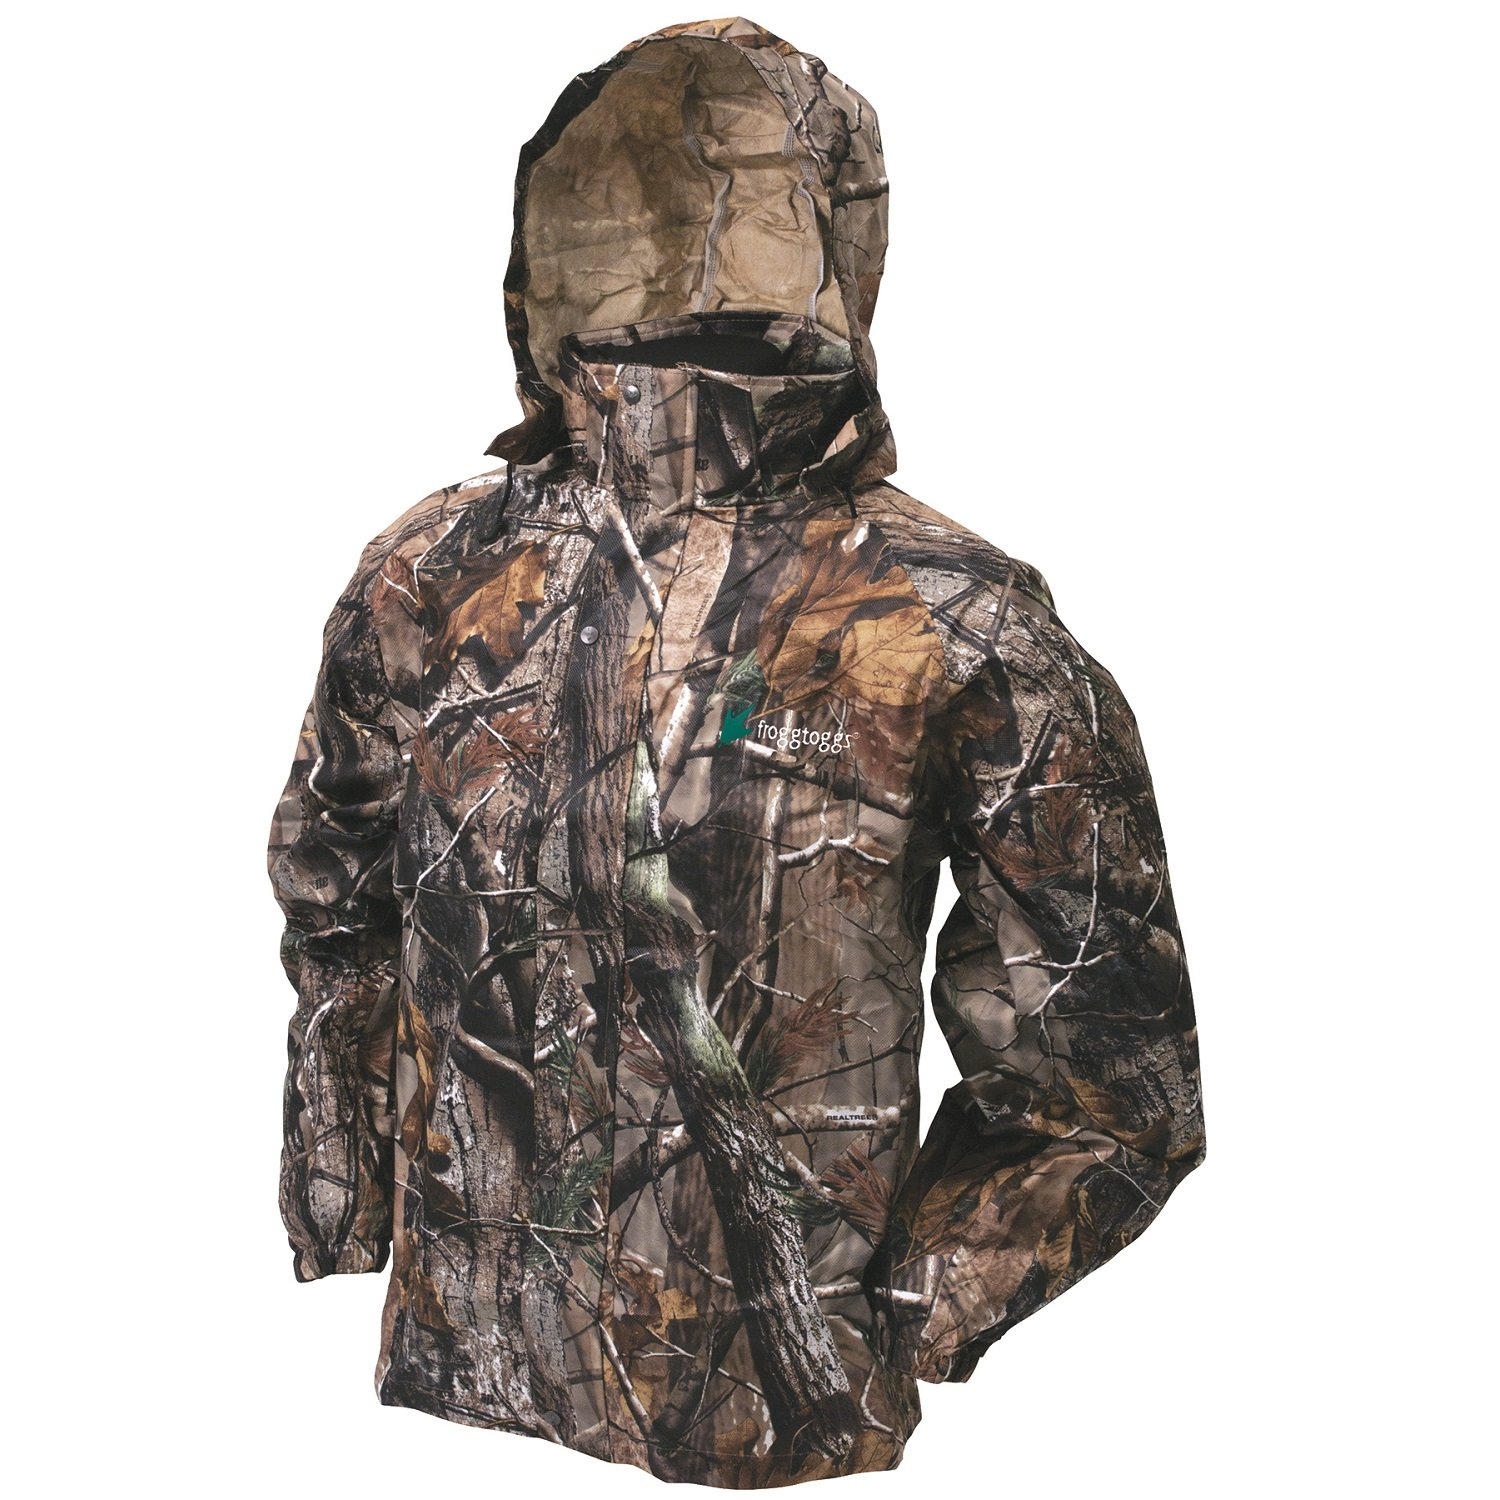 Frogg Toggs All Sports Camo Suit Sportsman Supply Inc.